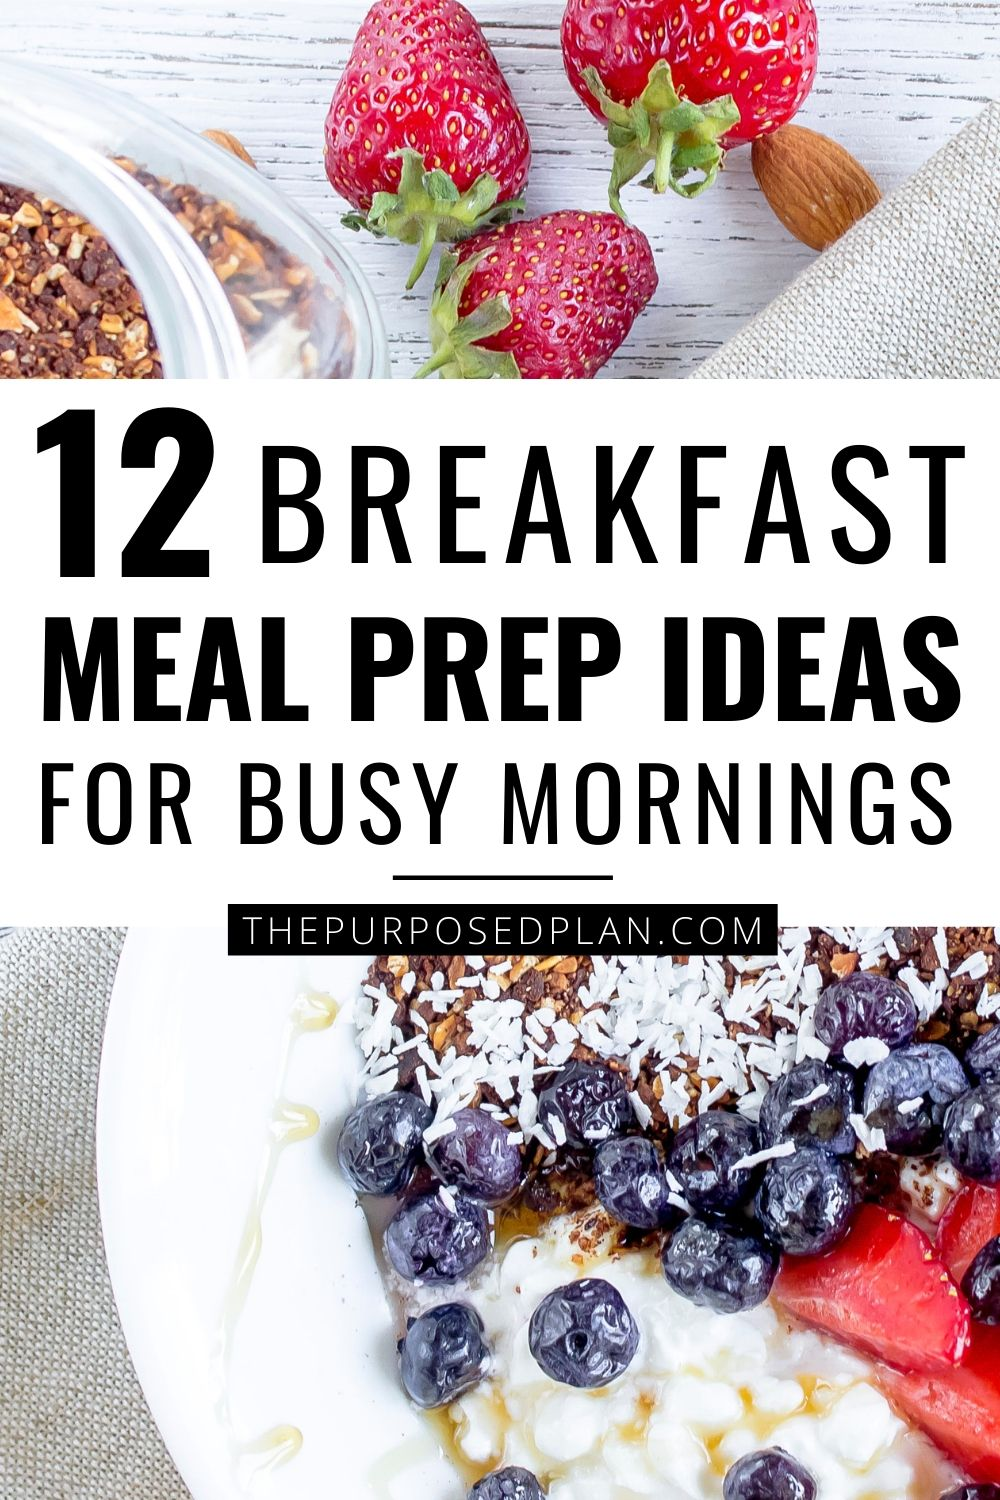 MEAL PREP IDEAS FOR BREAKFAST